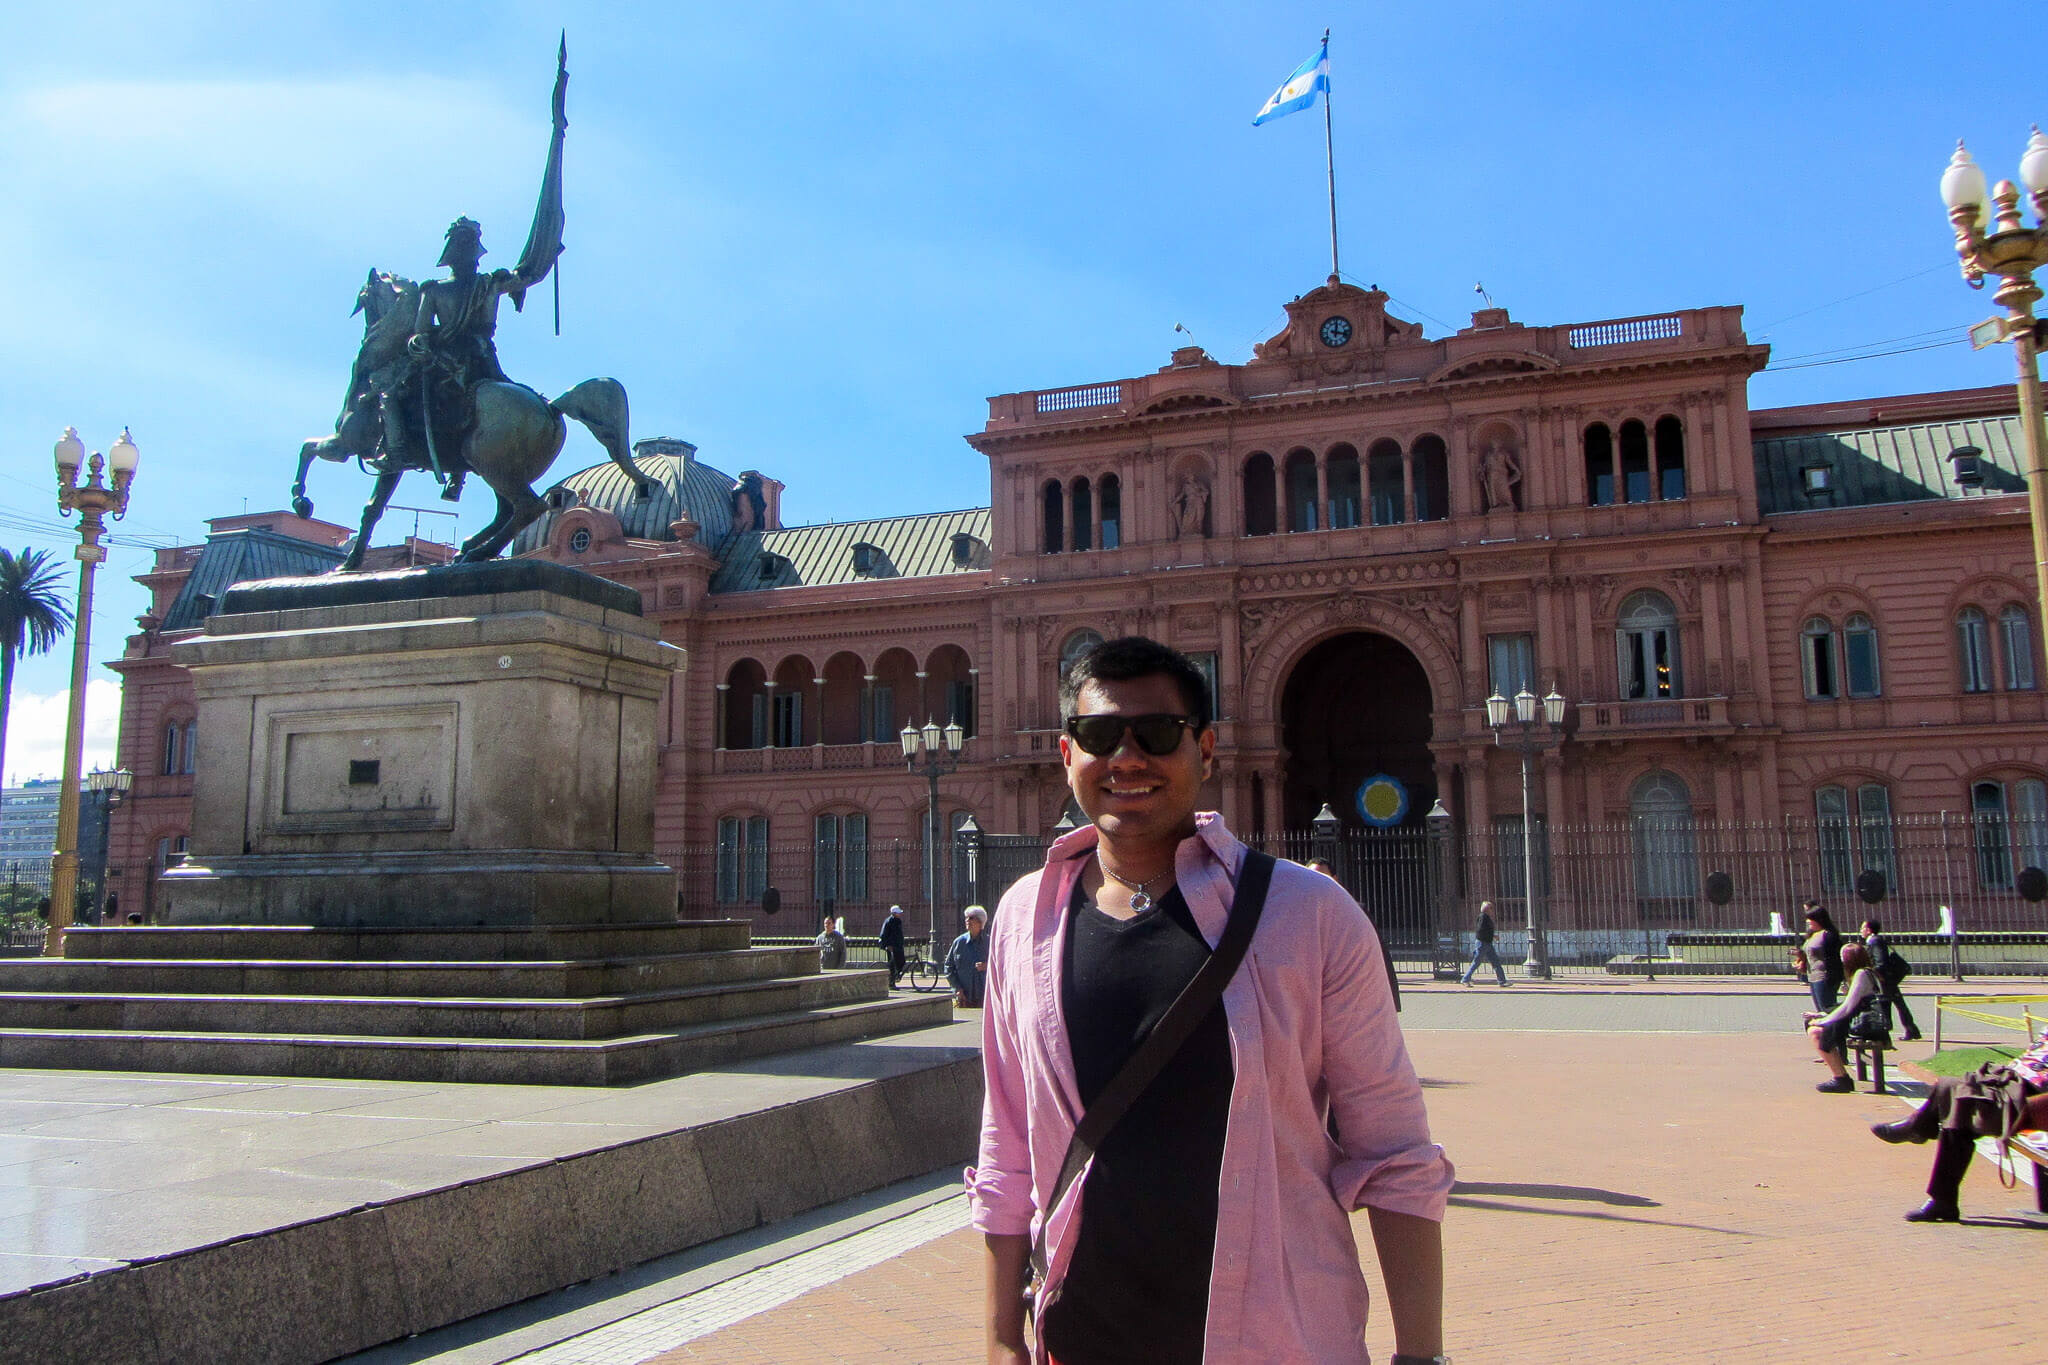 Man of Wonders in front of the Casa Rosada